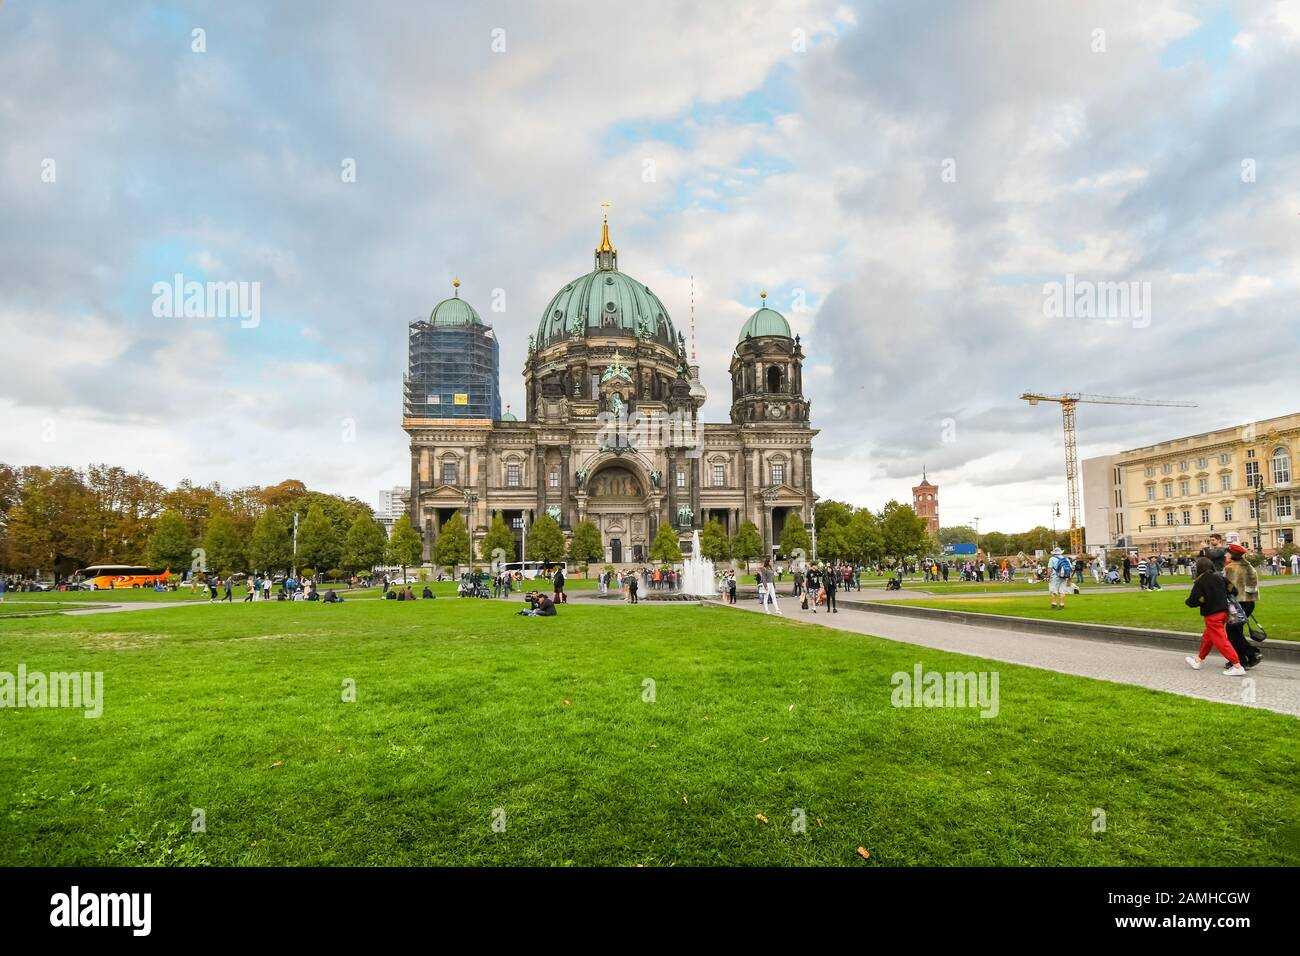 The front facade of the Berlin Cathedral as the public gather in the Lustgarten park on a partly cloudy day in late summer. Stock Photo